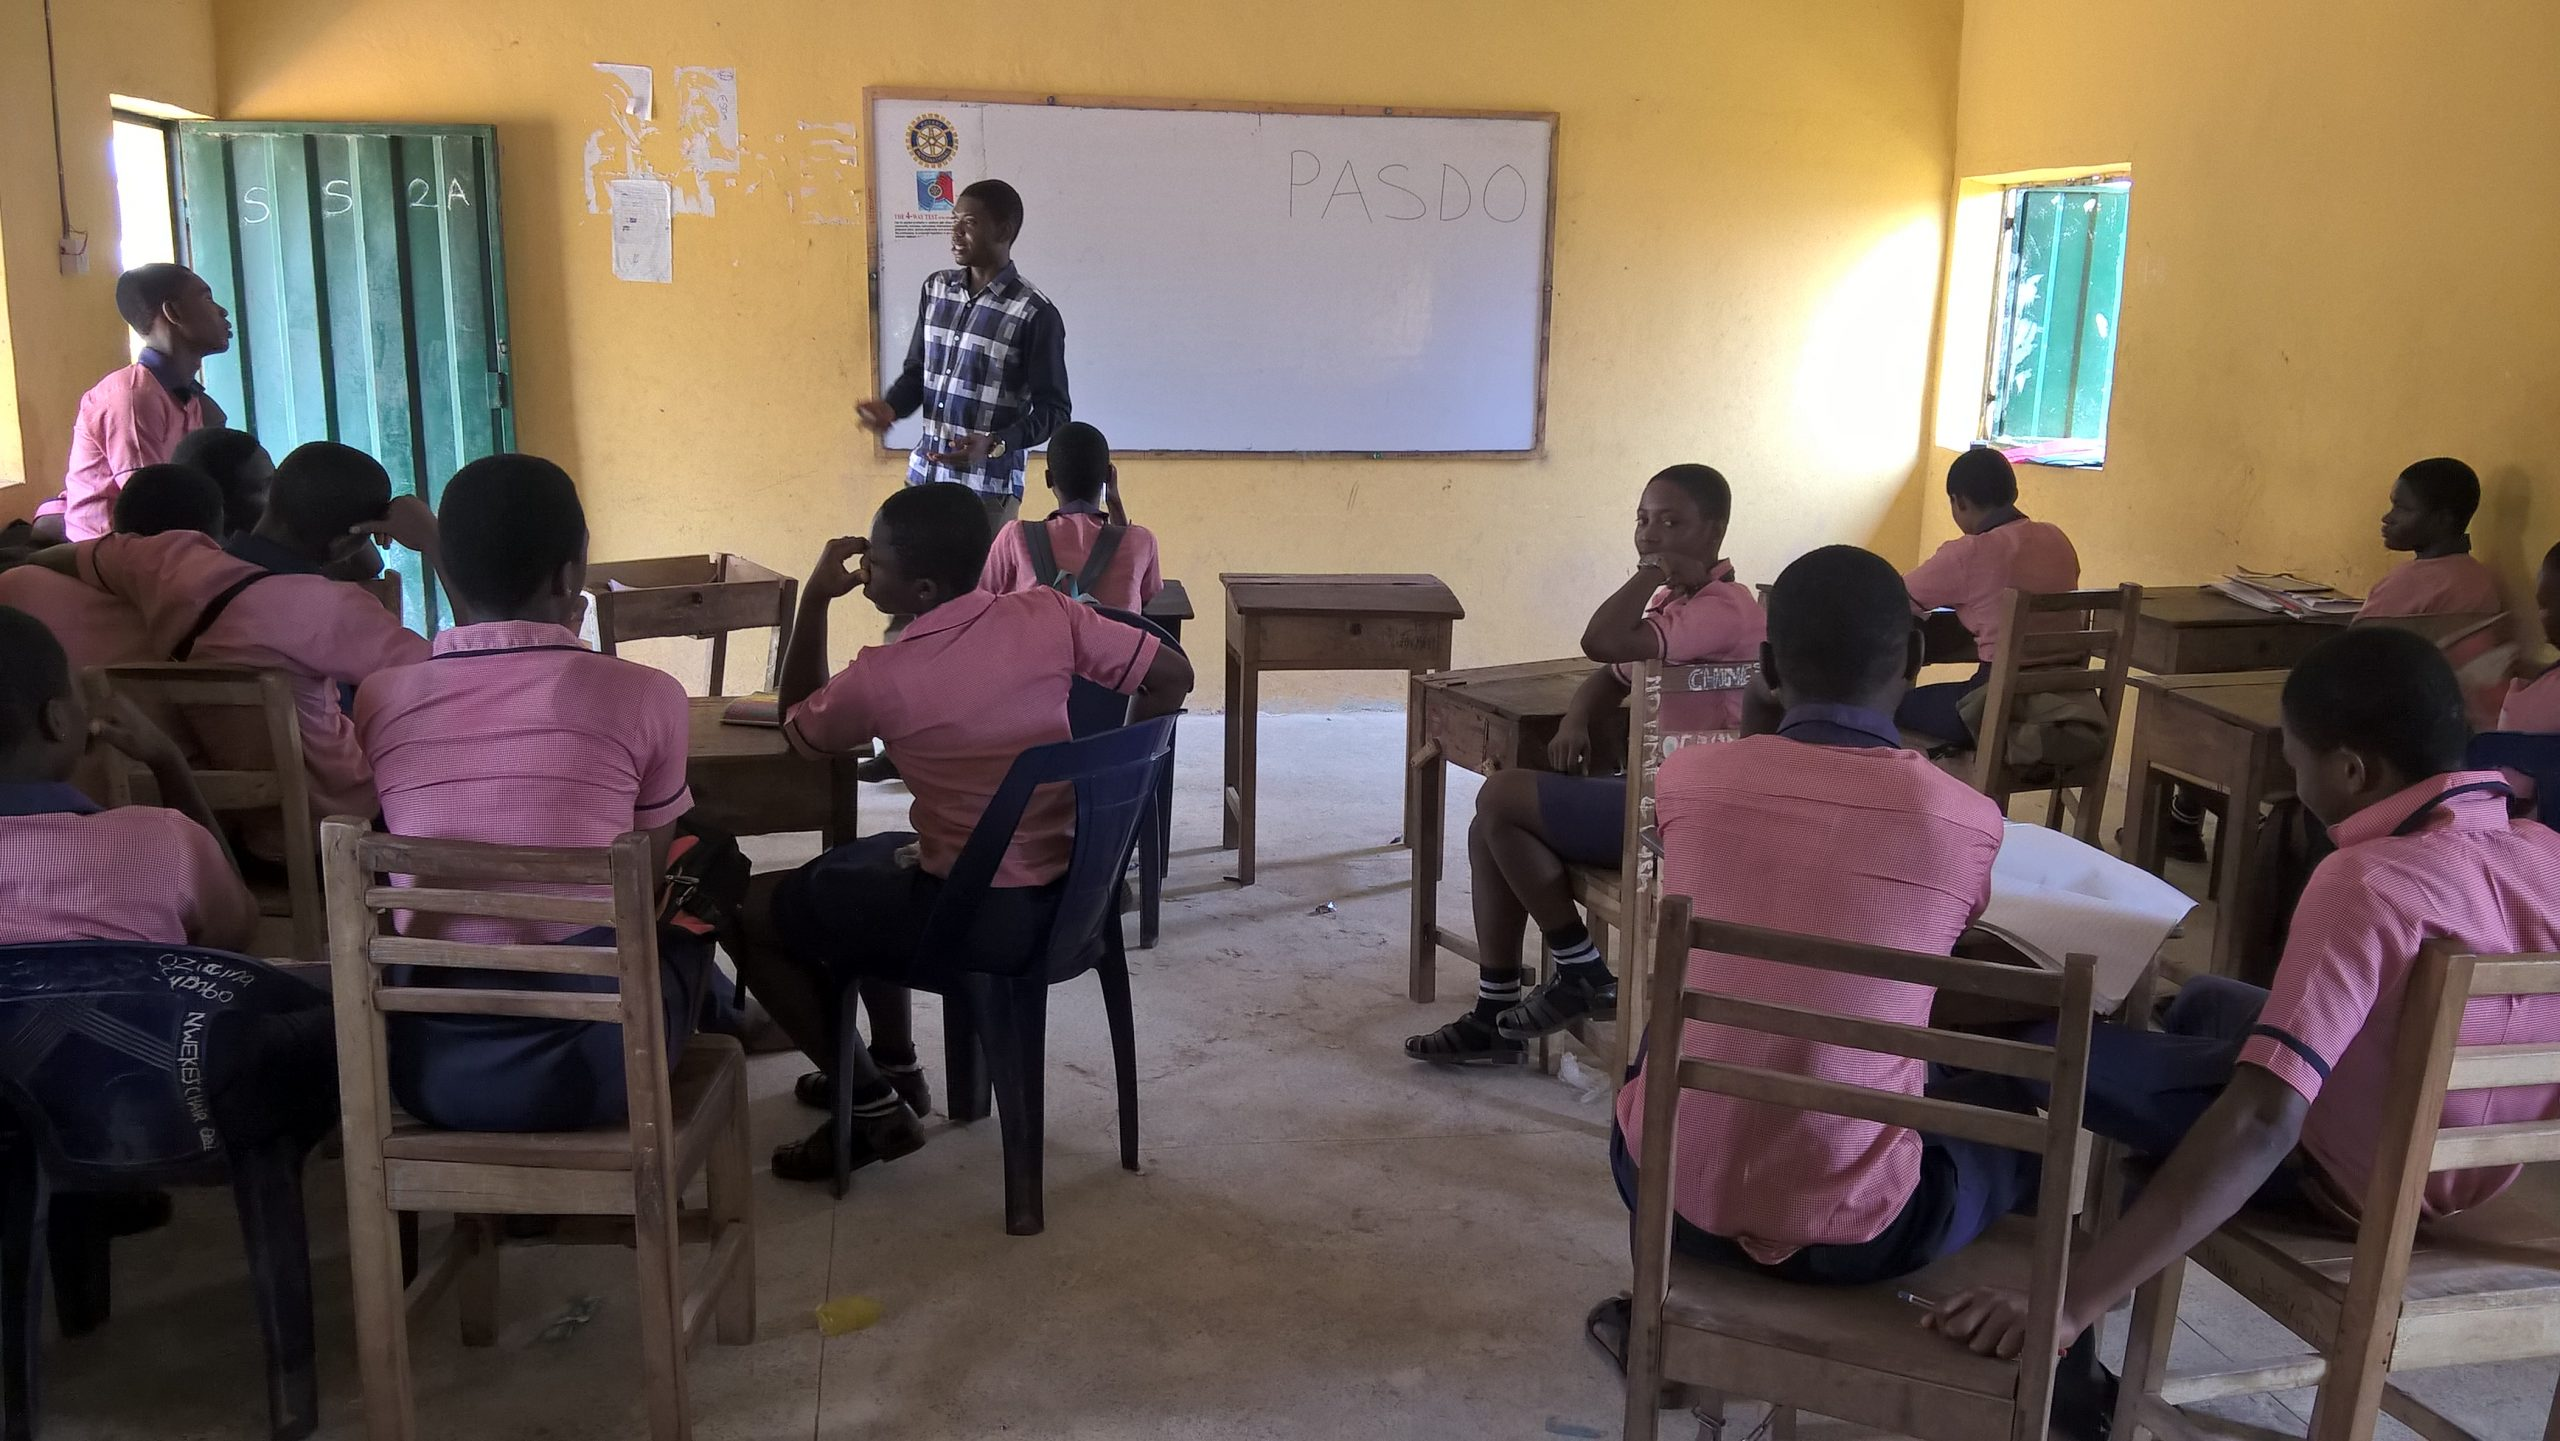 PASDO (formerly Zeeler Campaign) form Conservation Clubs in various secondary schools in Nigeria to promote the fight against climate change and gully erosion and protect biodiversity.